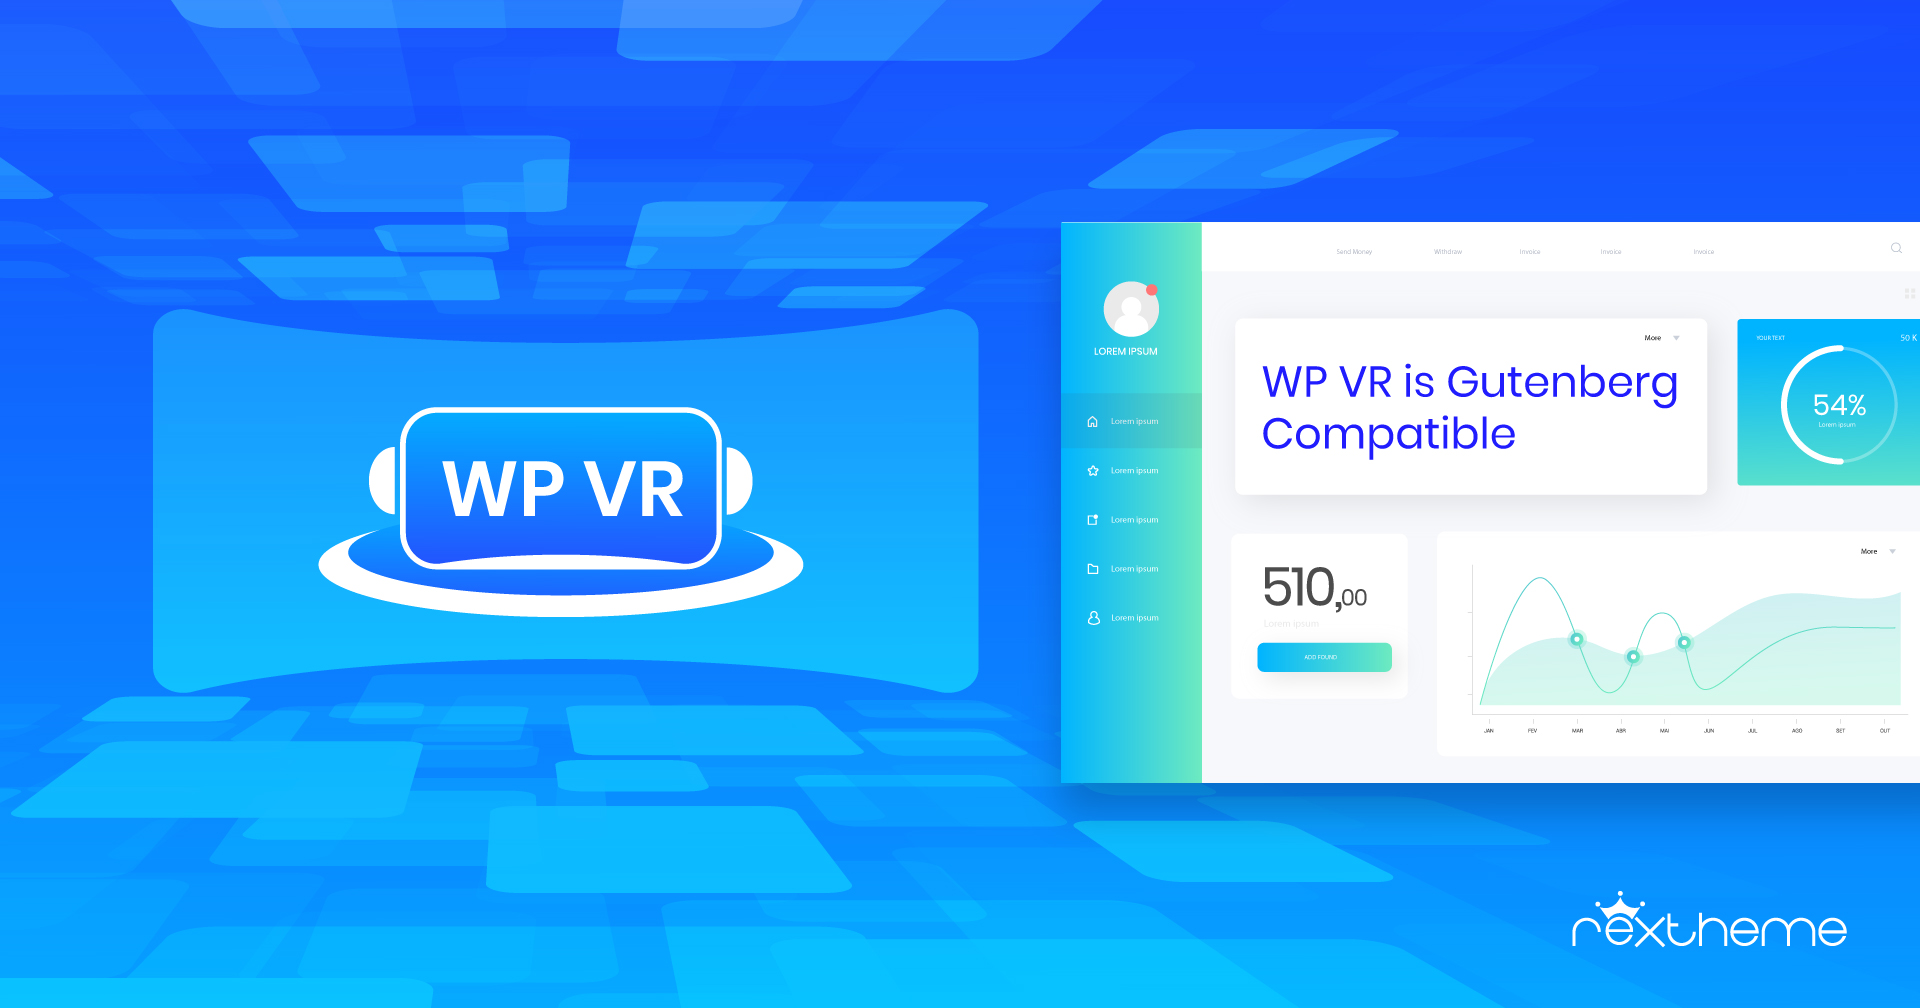 [Update] WP VR is Gutenberg Compatible [2019]